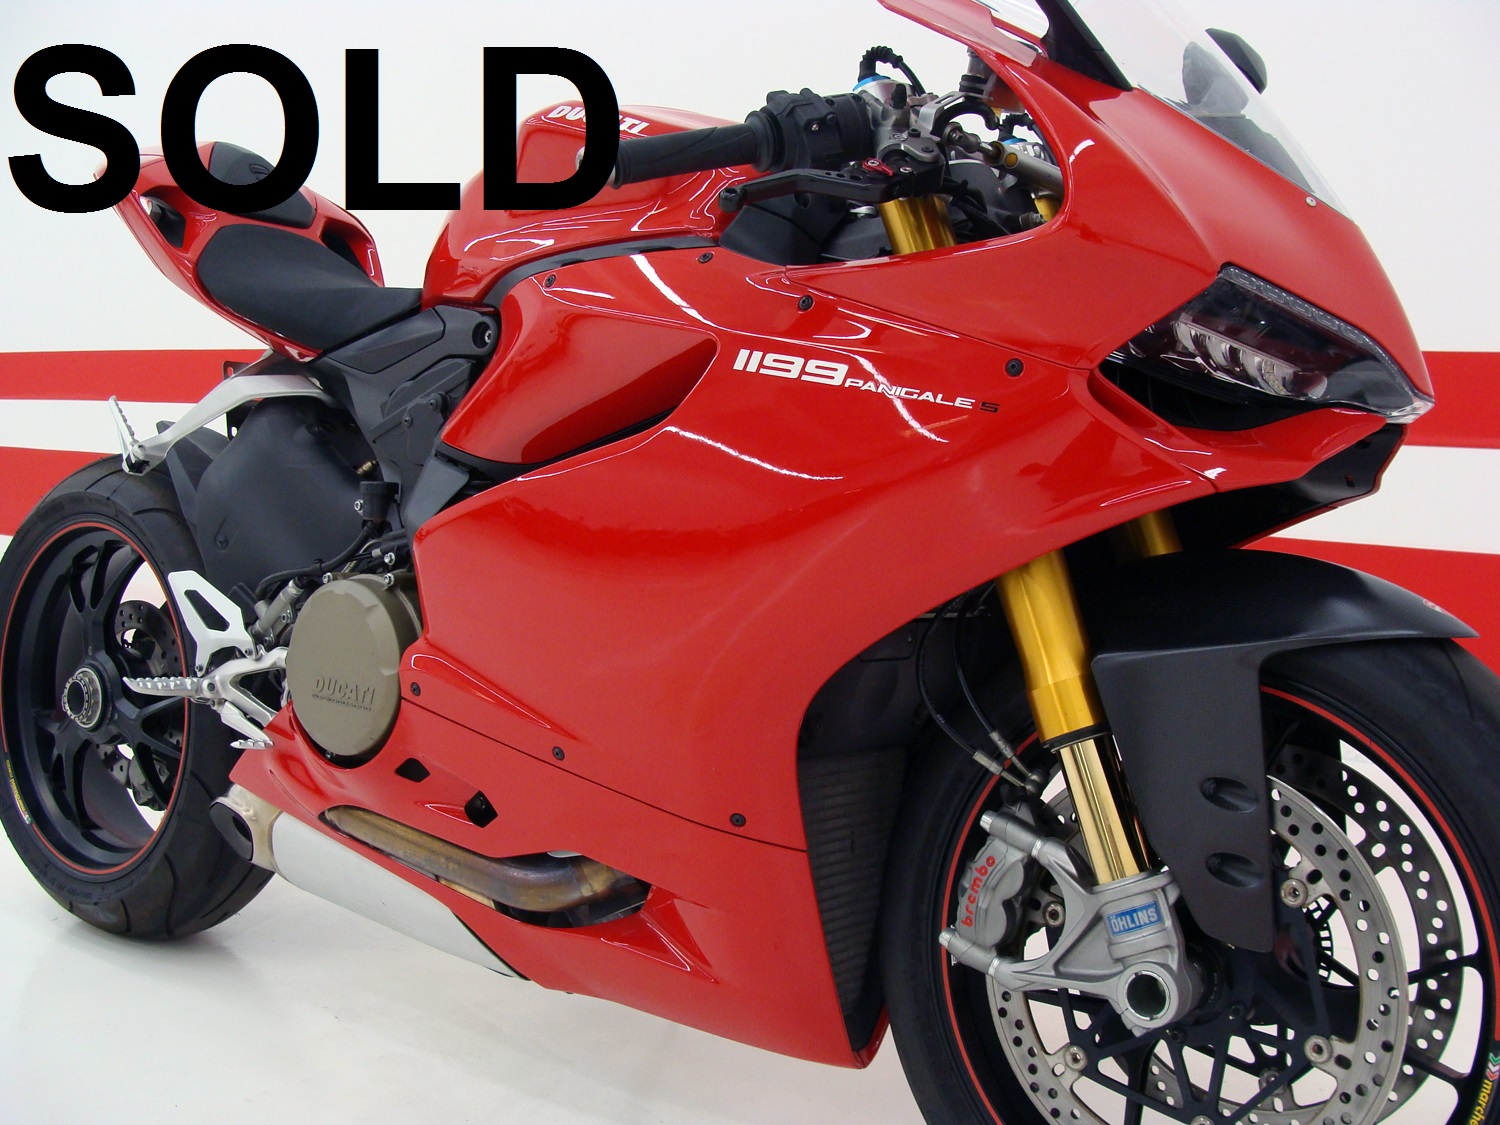 Ducati 1199 Panigale S (ABS)